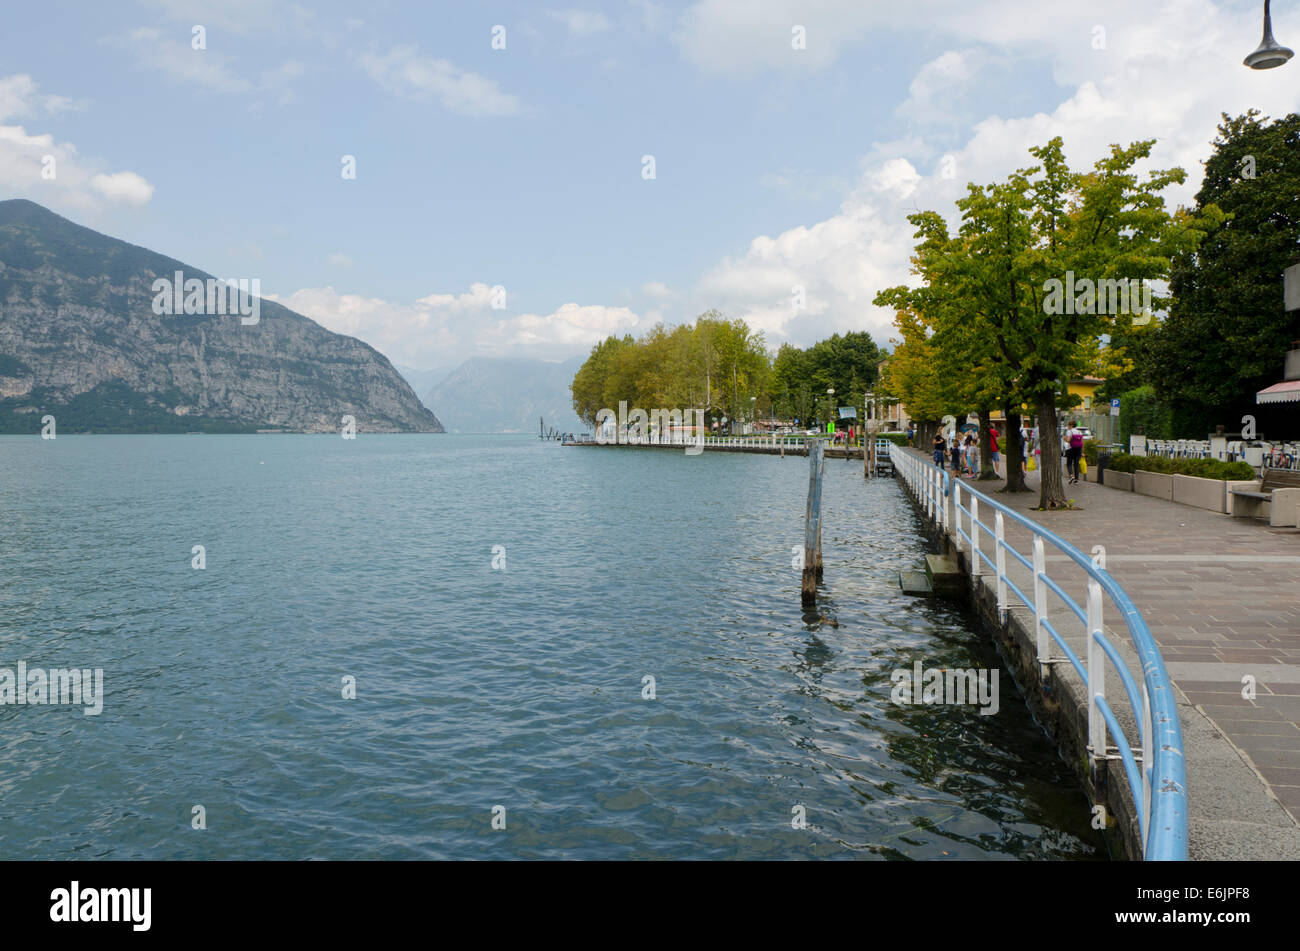 Lake Iseo or Lago d'Iseo or Sebino with the quai of Iseo  Lombardy region. Northern Italy. - Stock Image